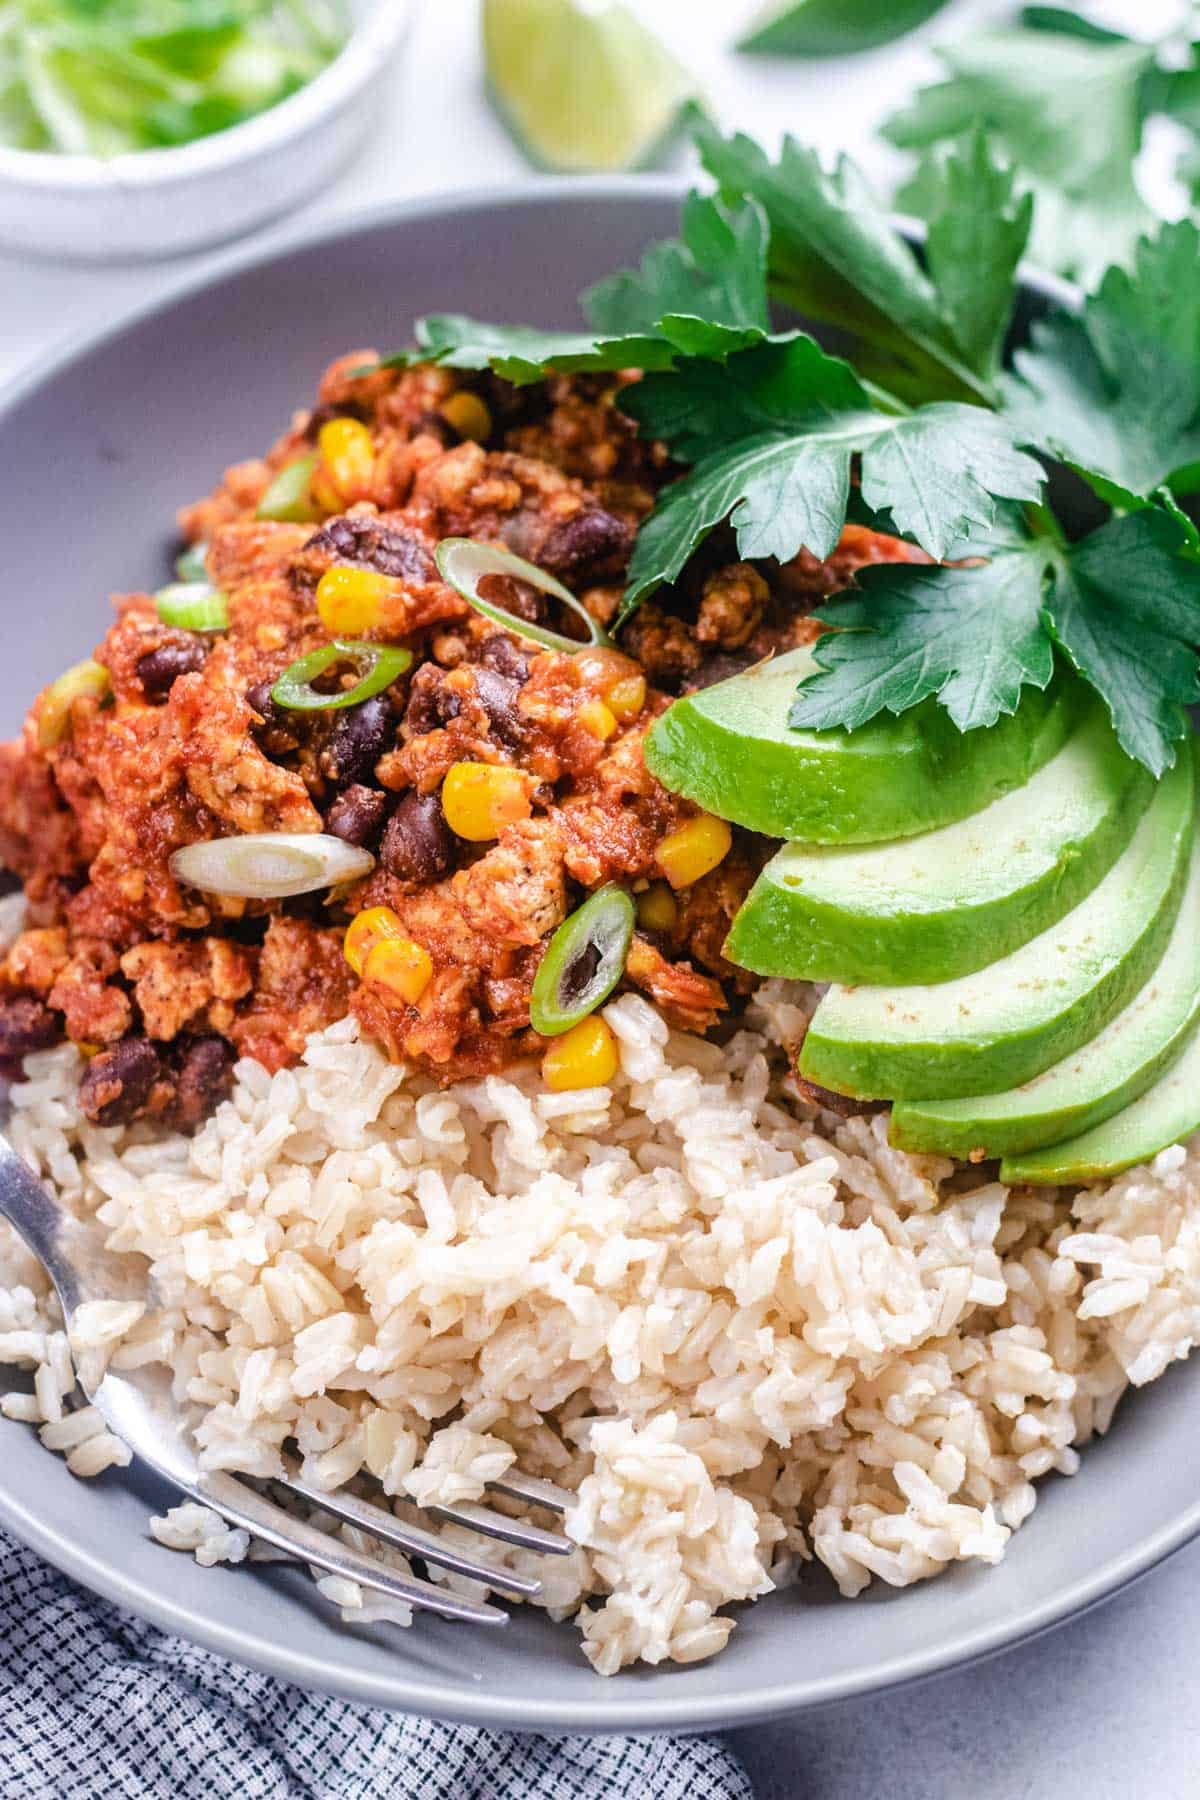 Turkey taco skillet with brown rice, topped with avocado and cilantro.